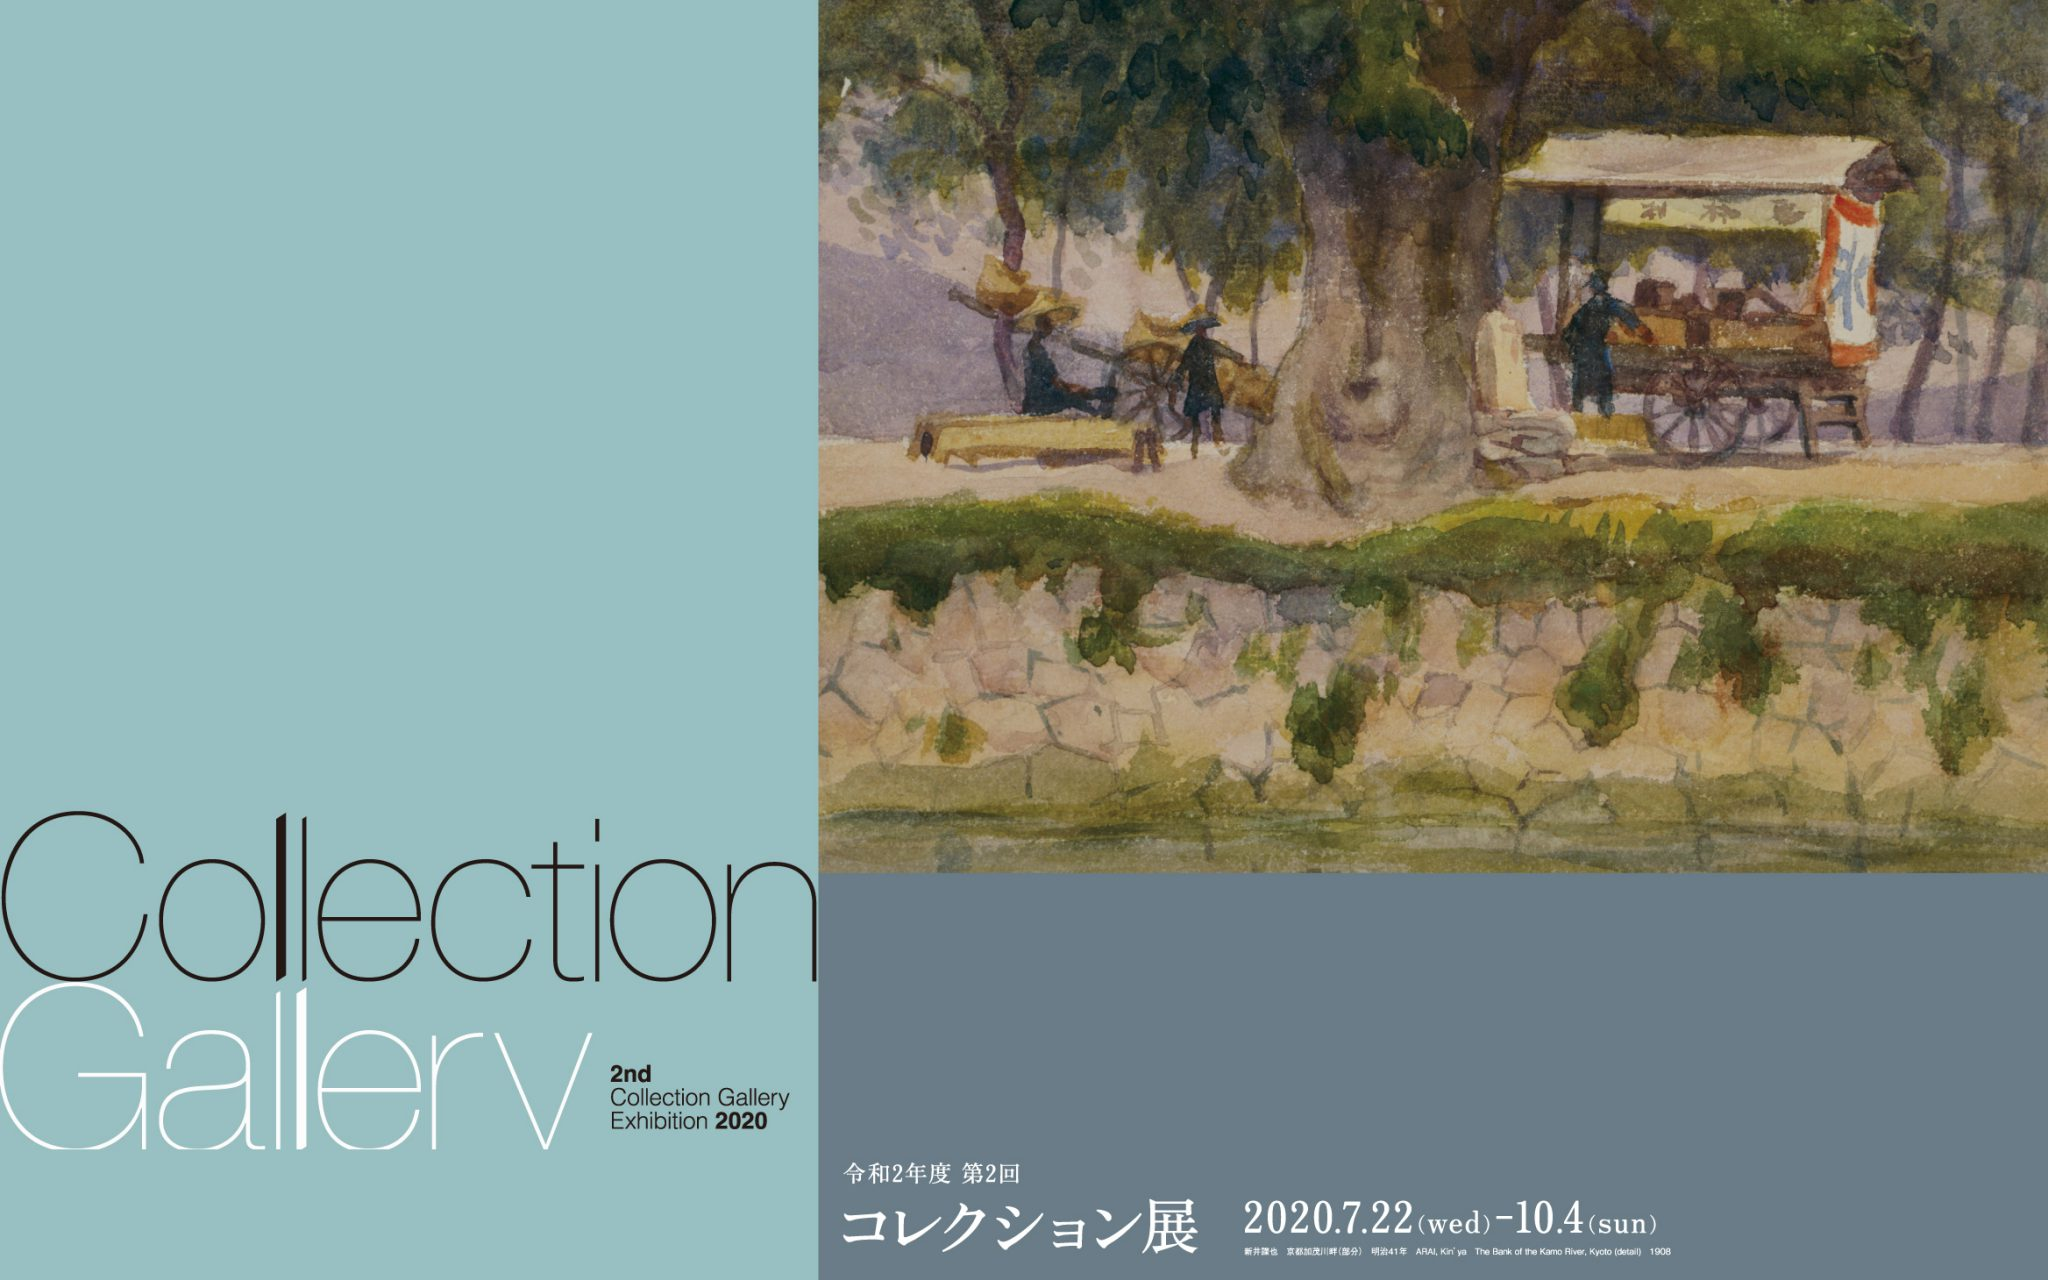 2nd Collection Gallery Exhibition 2020–2021